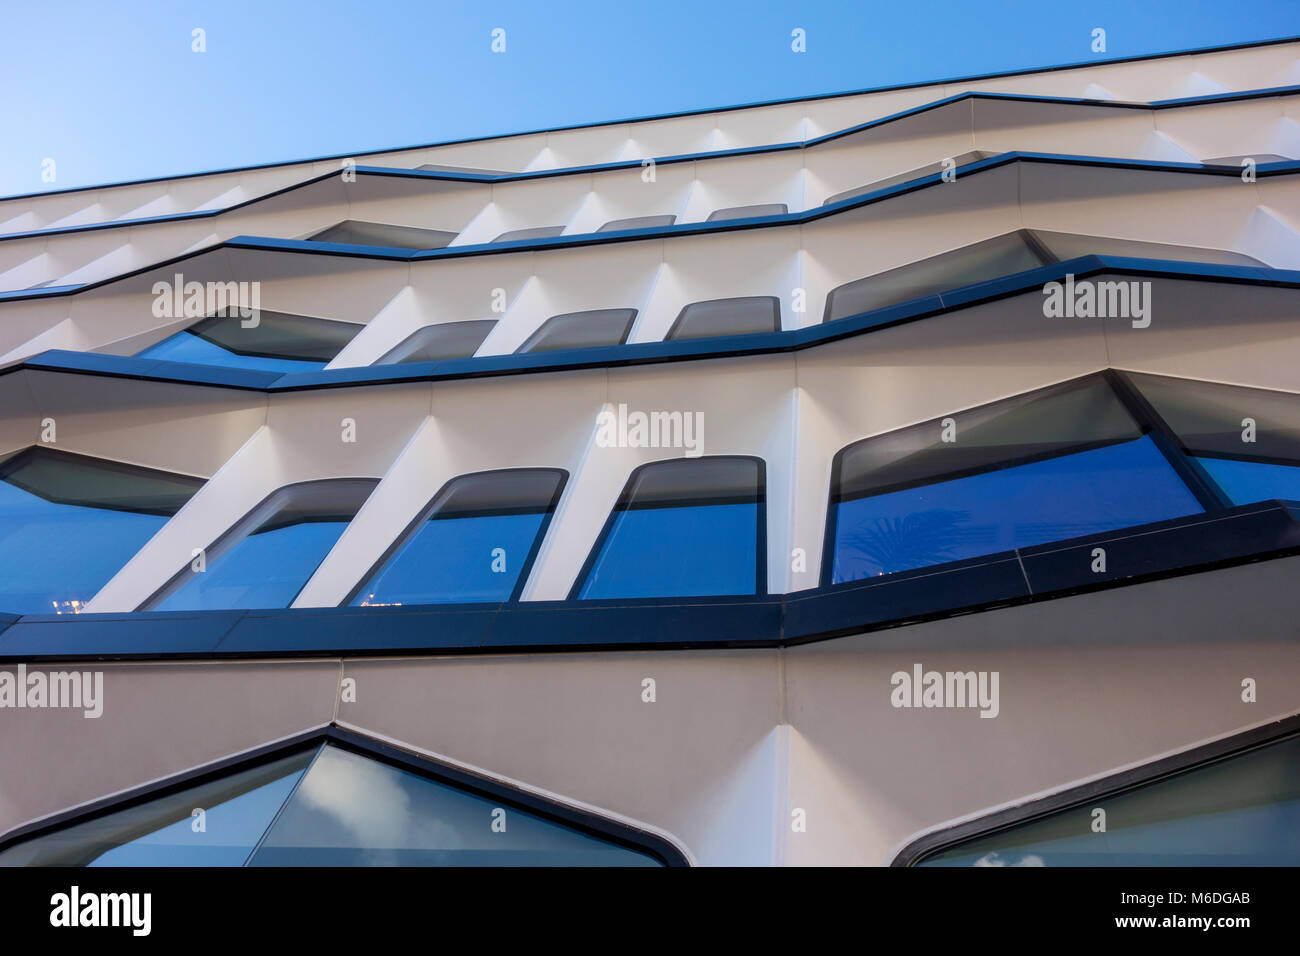 30 Cannon Street, 1970s modern office building by Whinney, Son & Austen Hall, City of London, UK - Stock Image